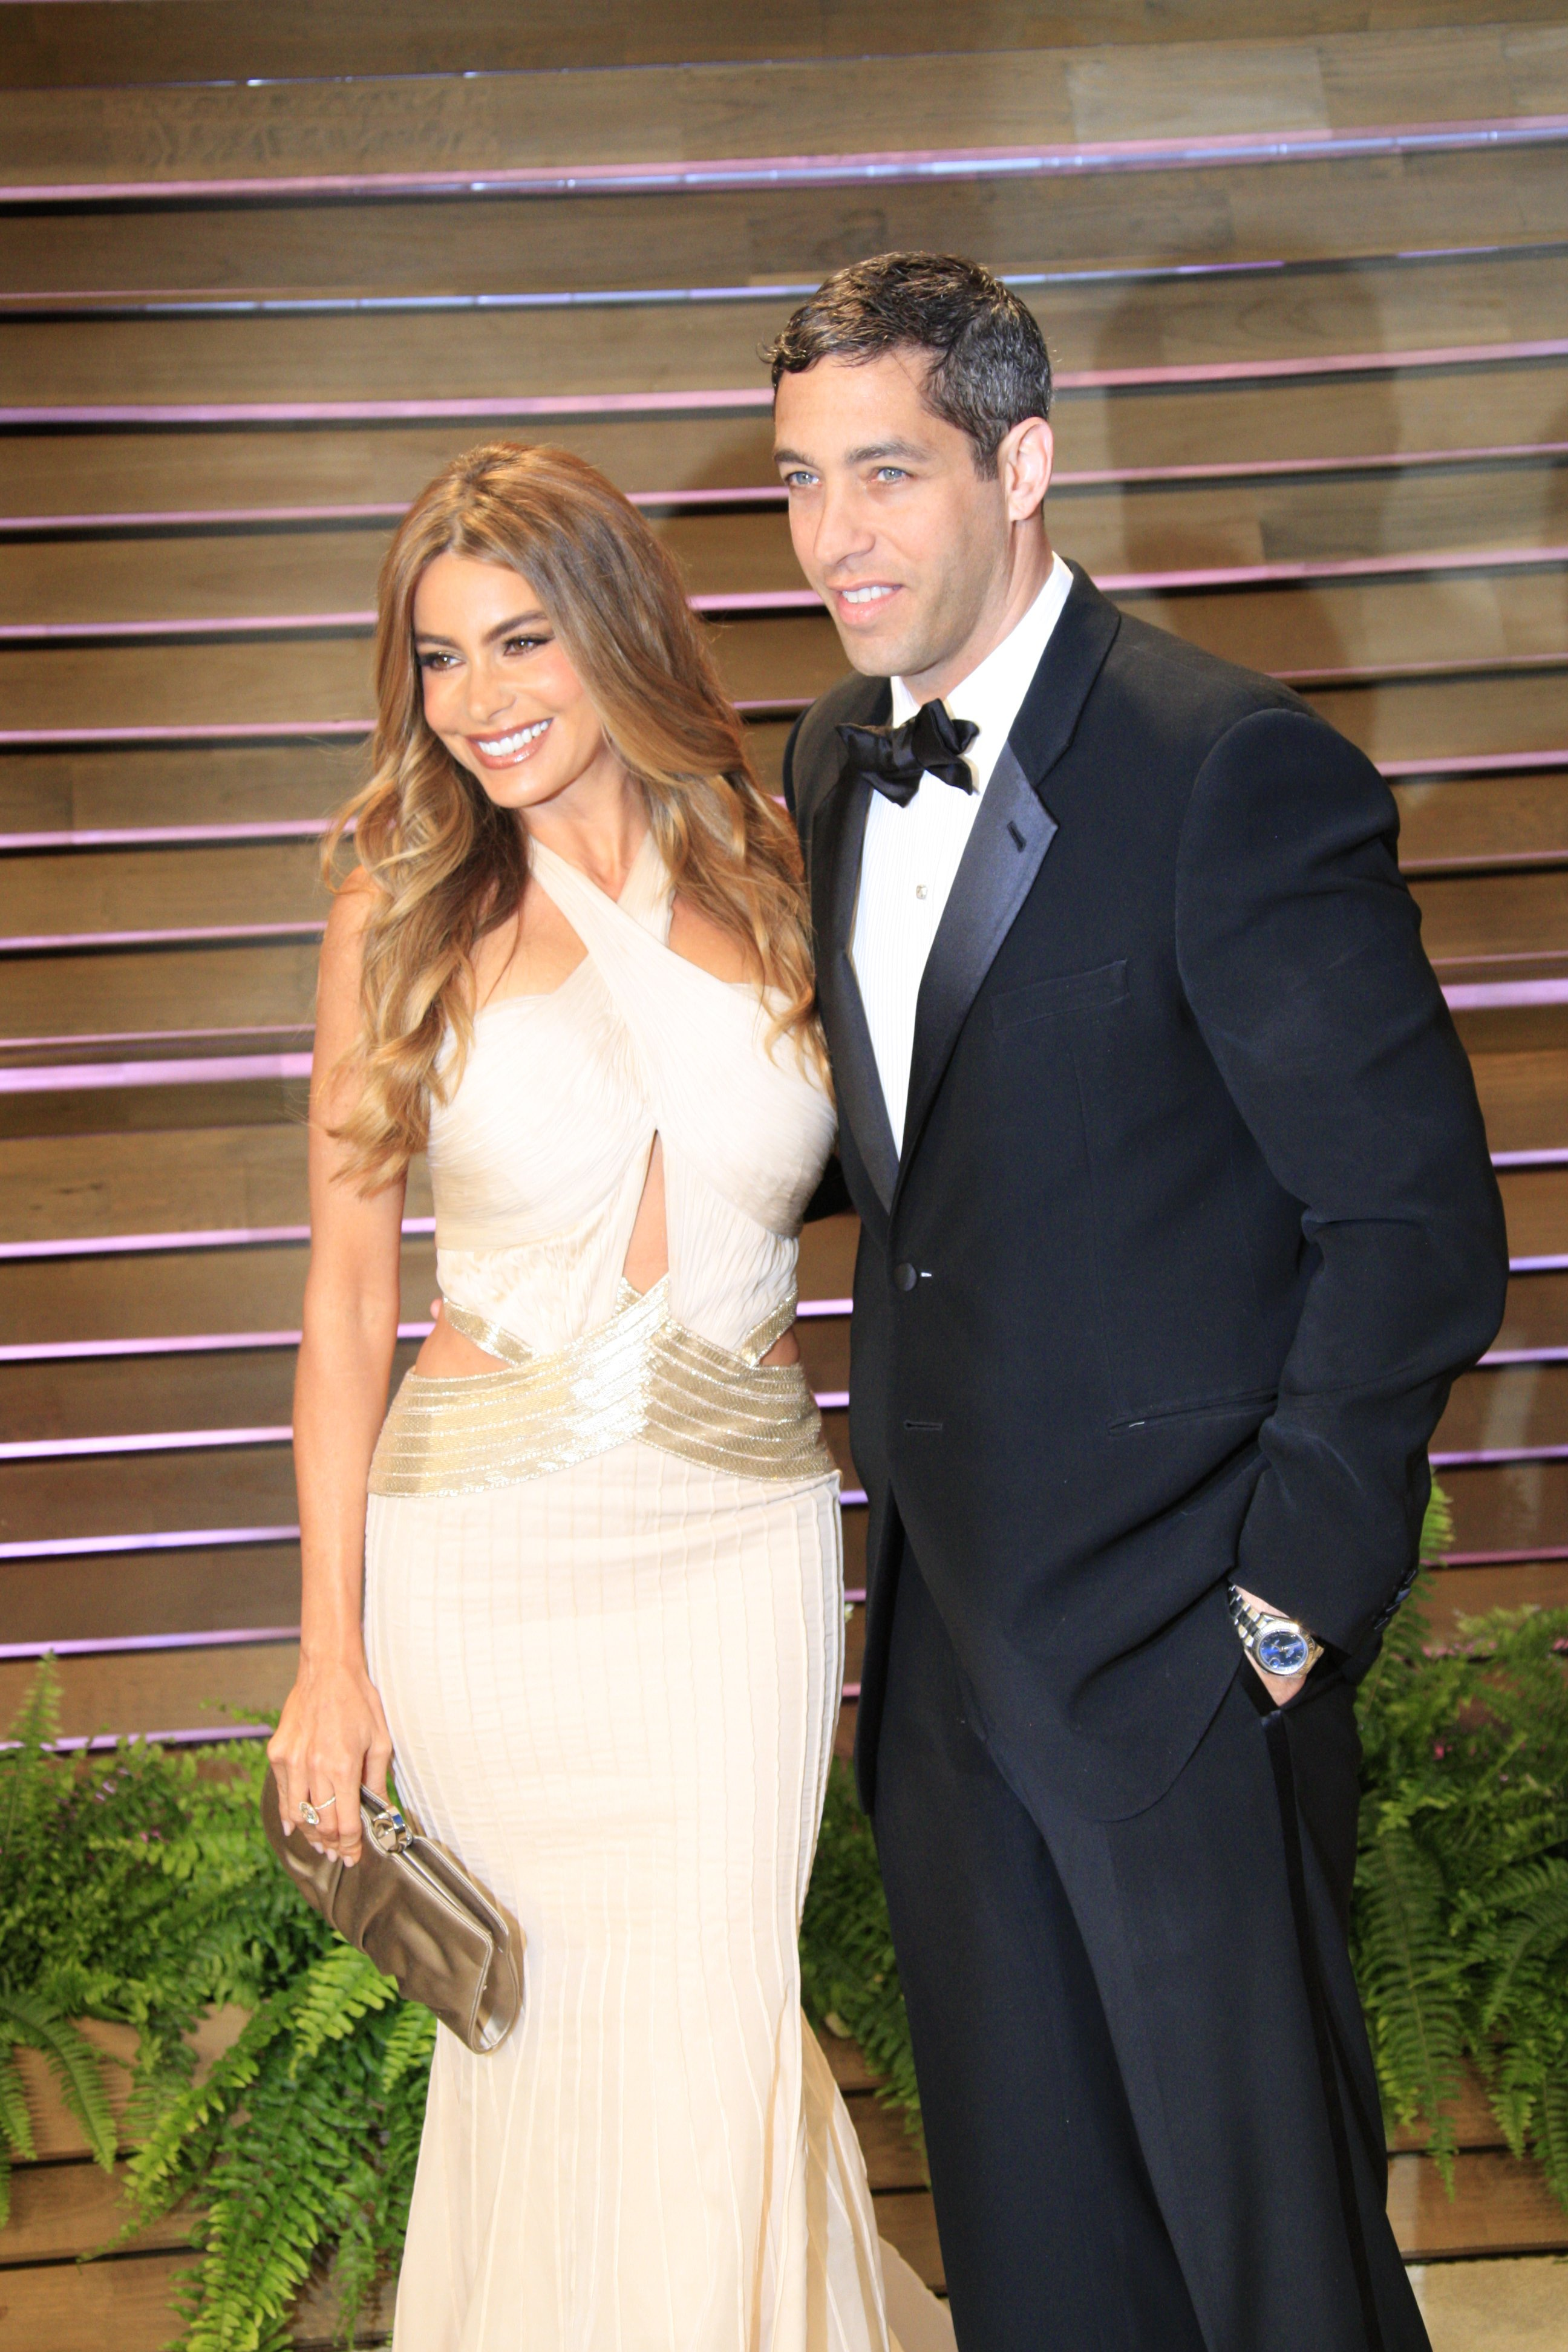 Sofia Vergara, Nick Loeb at the 2014 Vanity Fair Oscar Party at the Sunset Boulevard on March 2, 2014 in West Hollywood, Los Angeles | Photo: Shutterstock